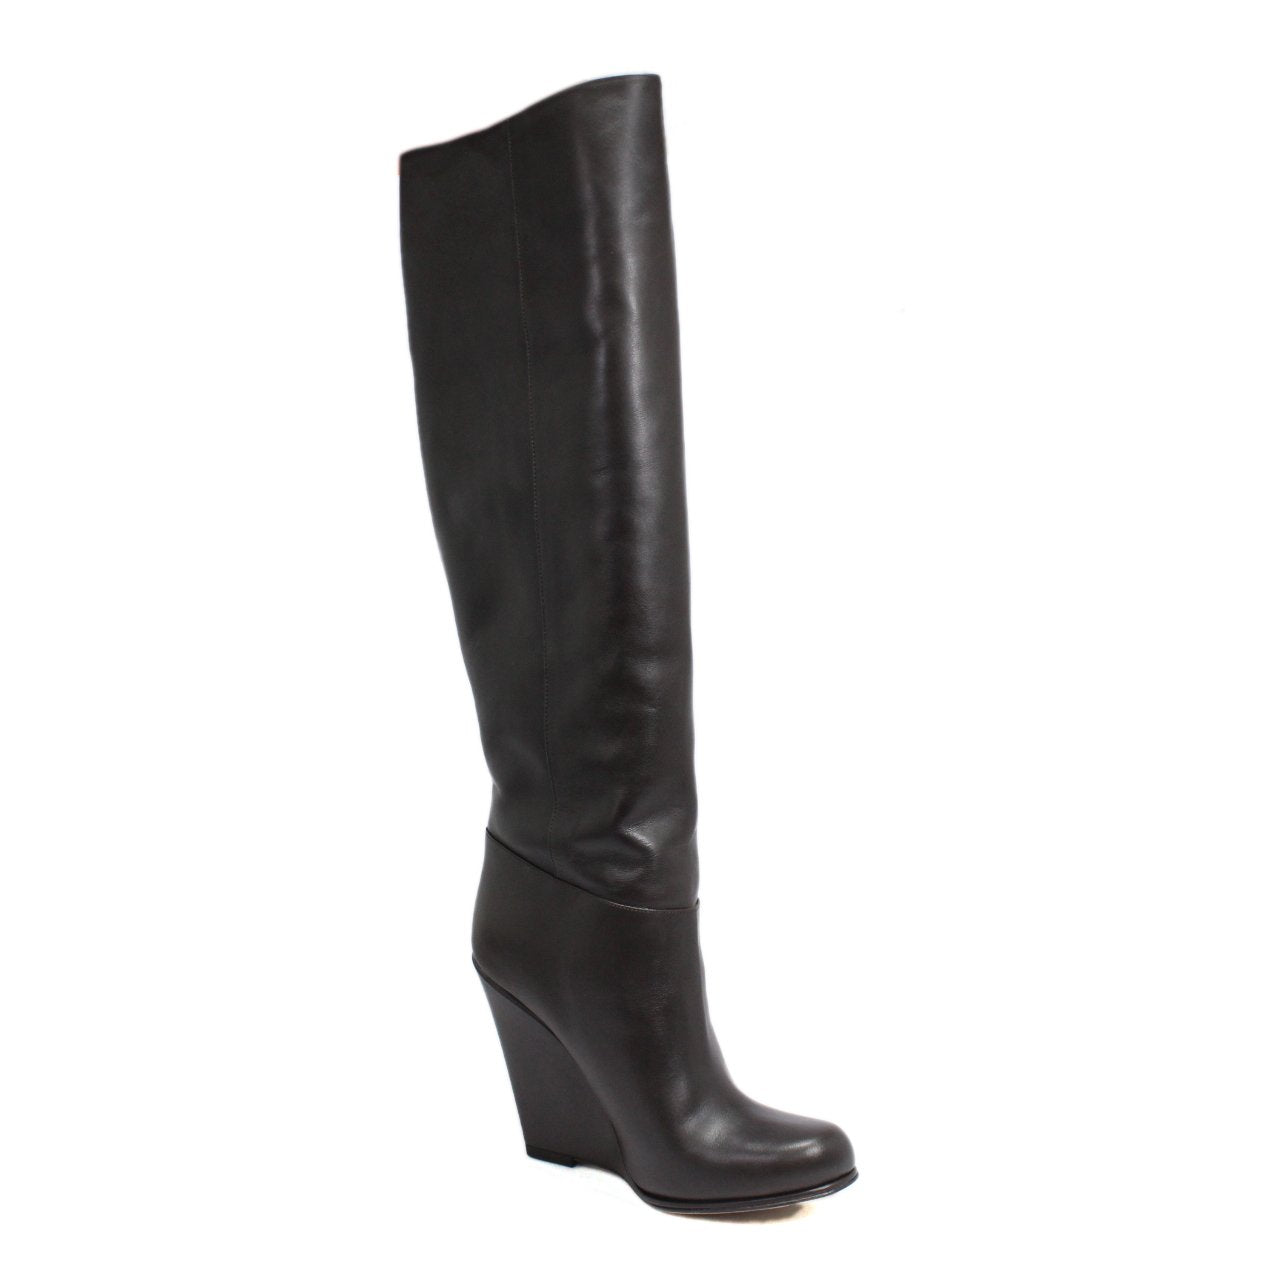 Bally Deity Women's Knee-High Wedge Heel Boots